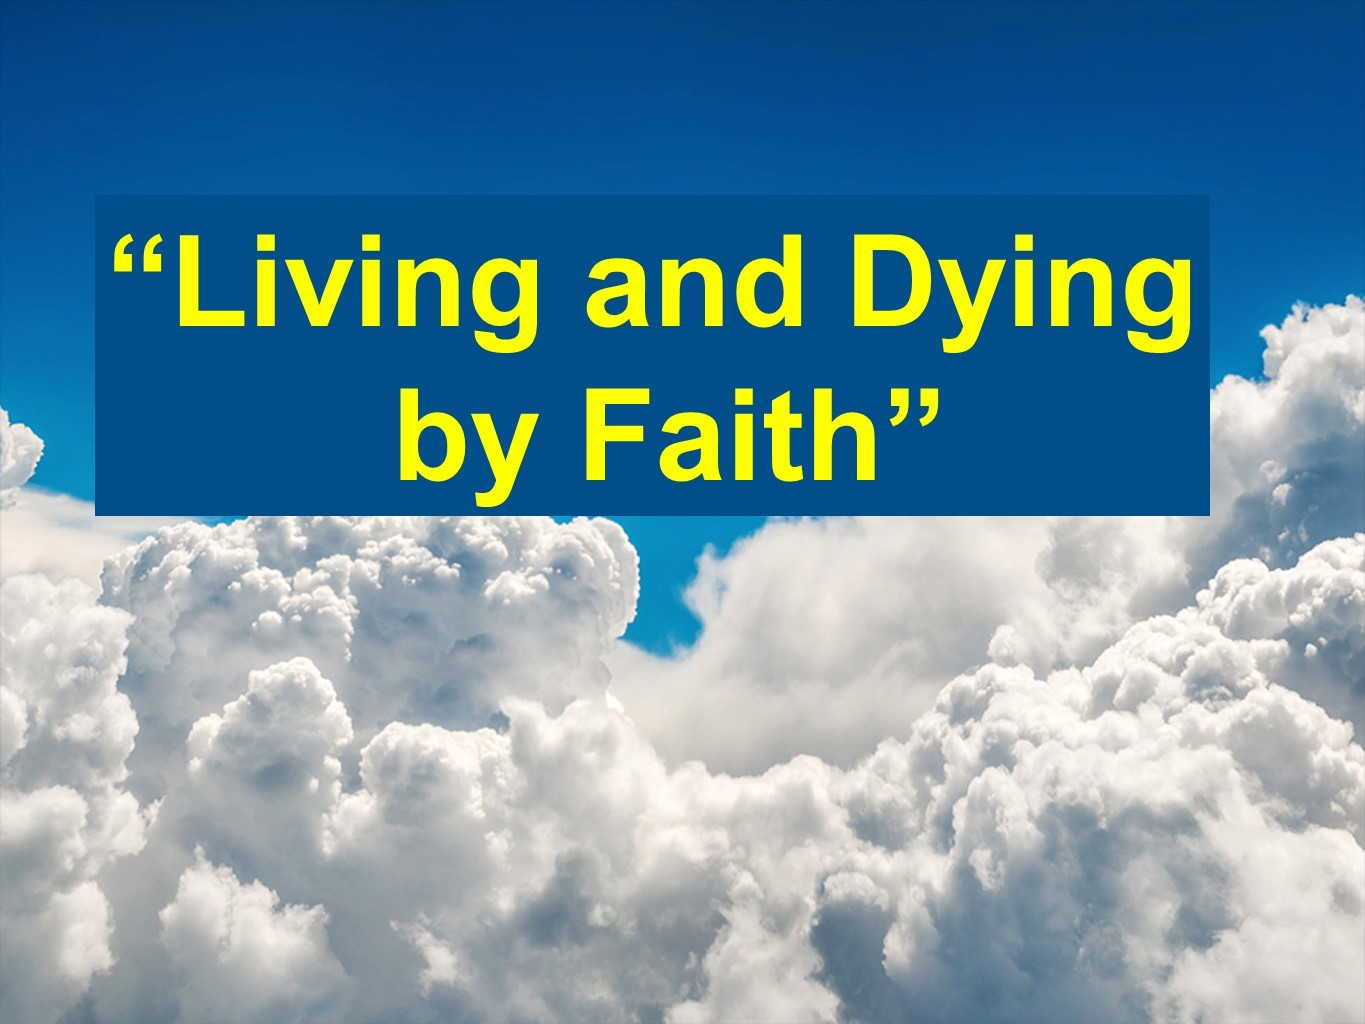 Living and Dying by Faith